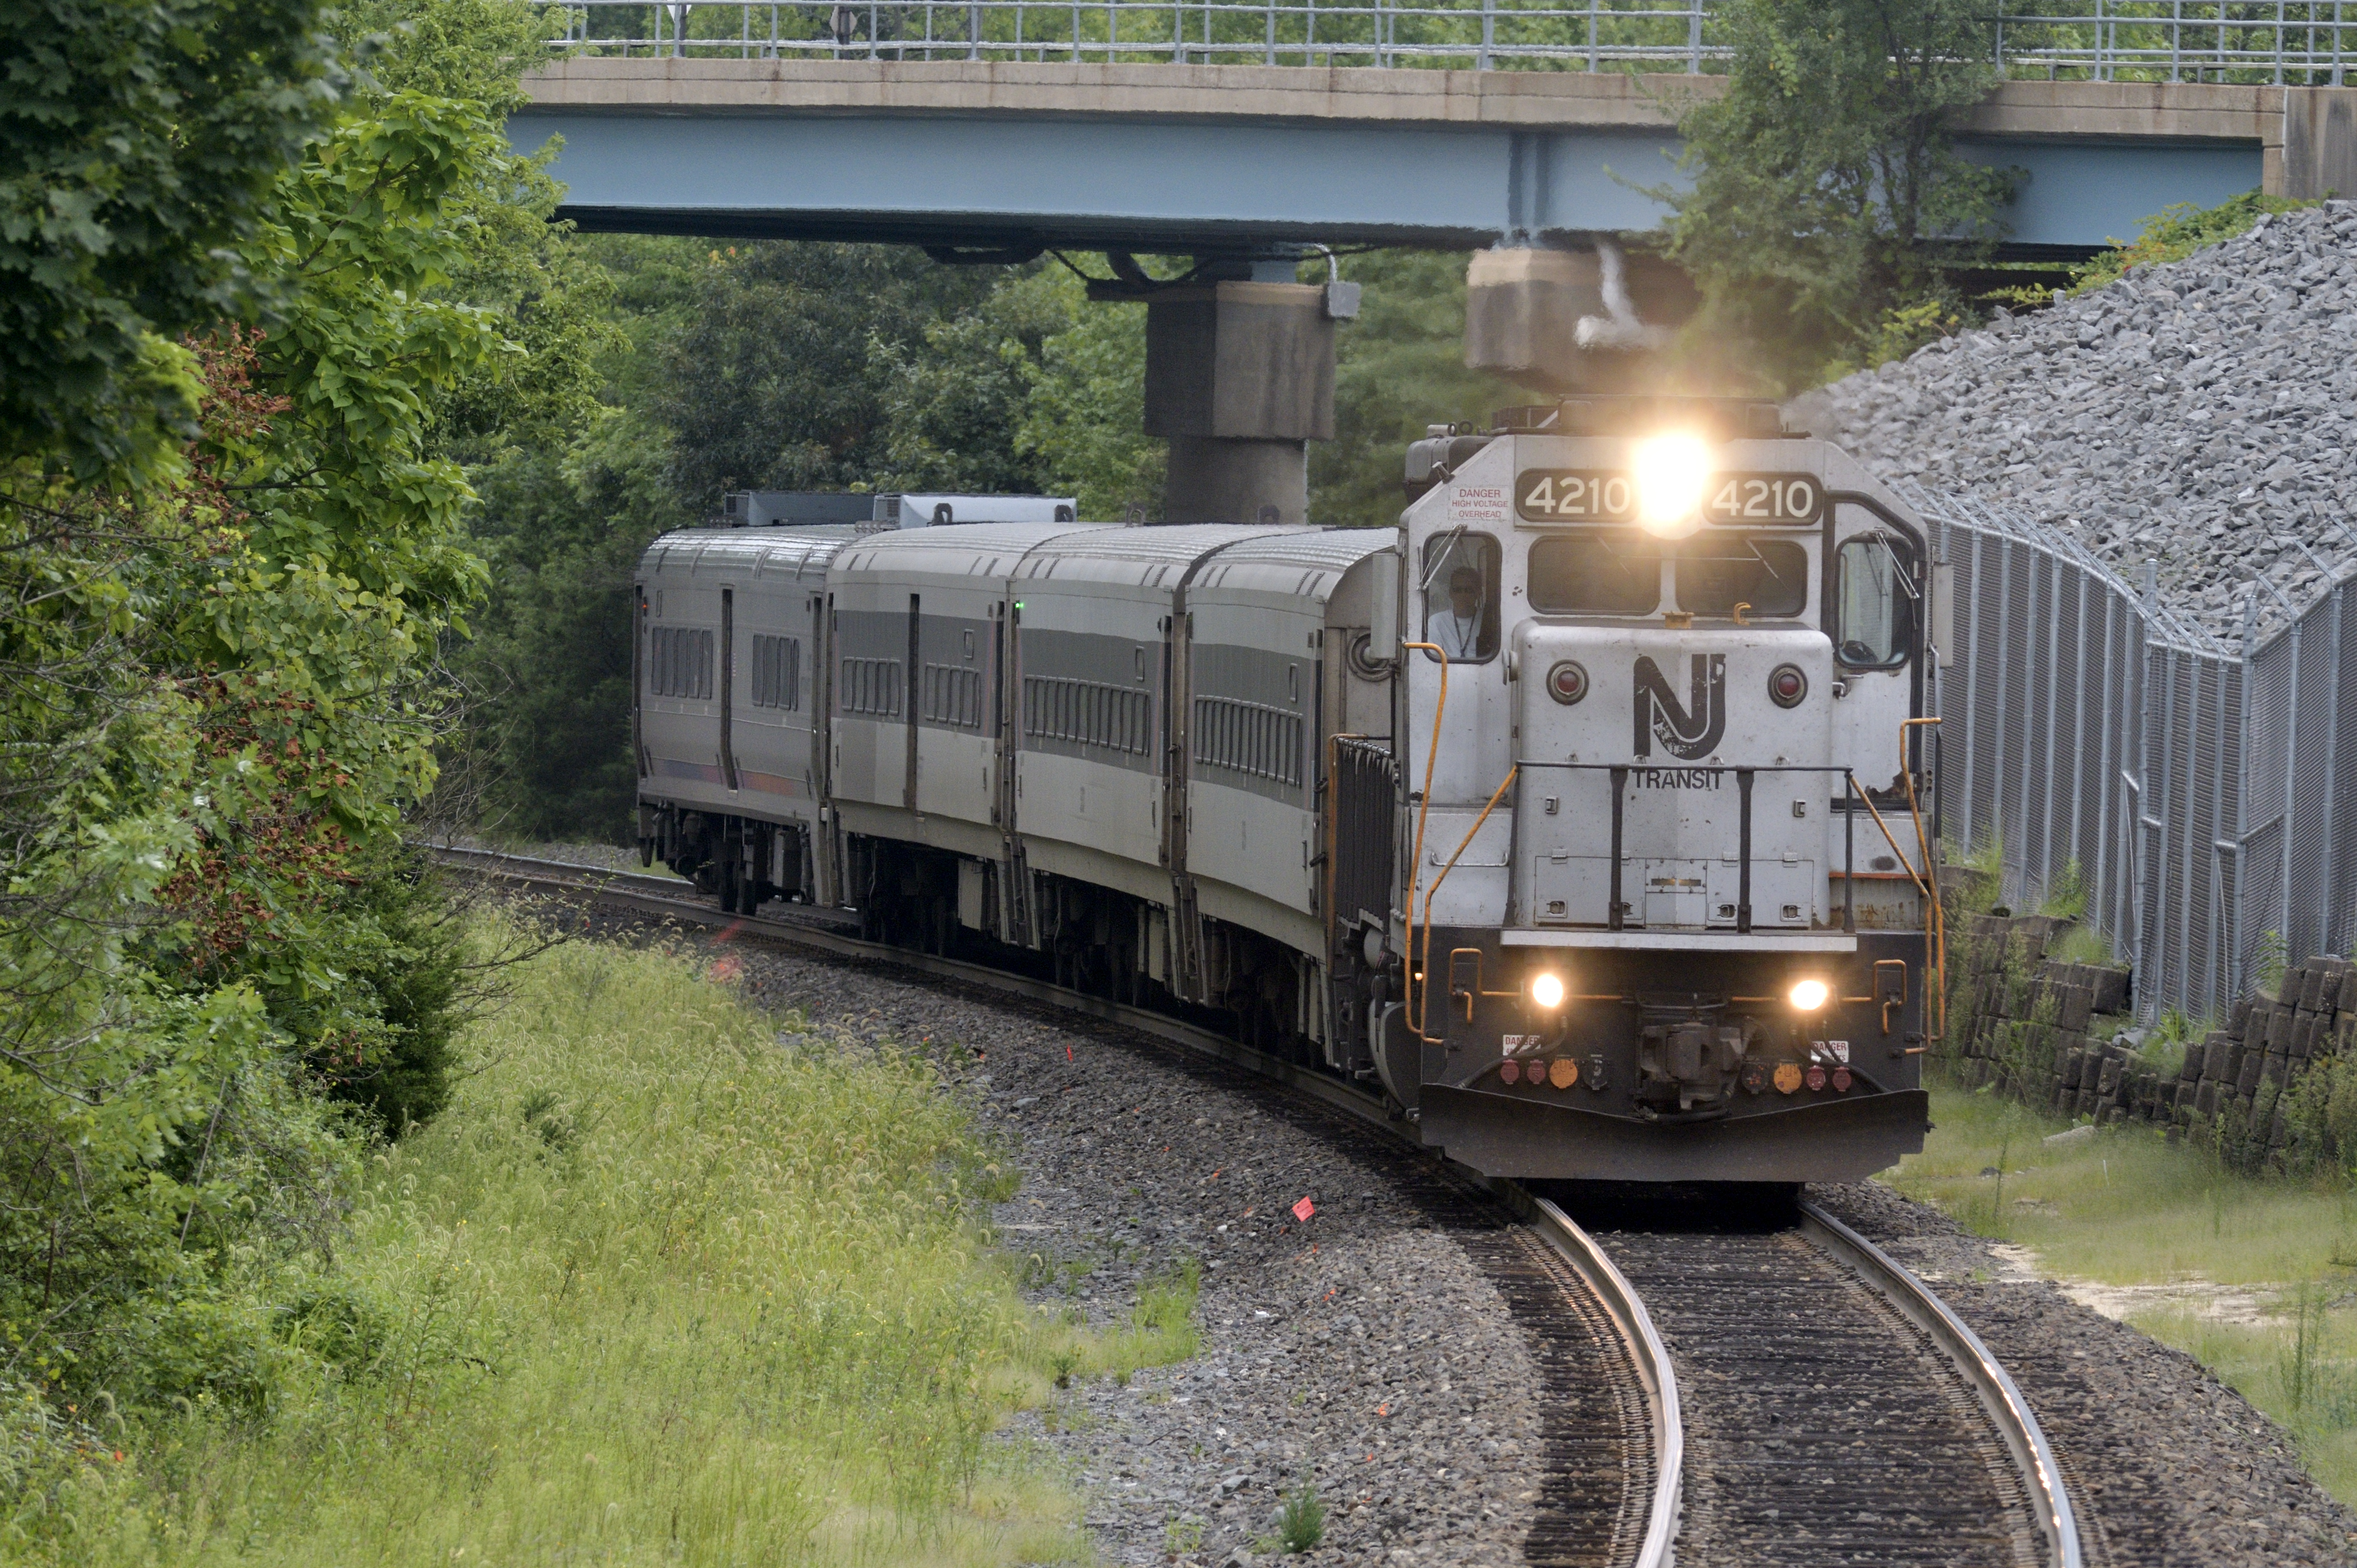 Normal NJ Transit service will resume April 1 at the earliest, according to state officials.